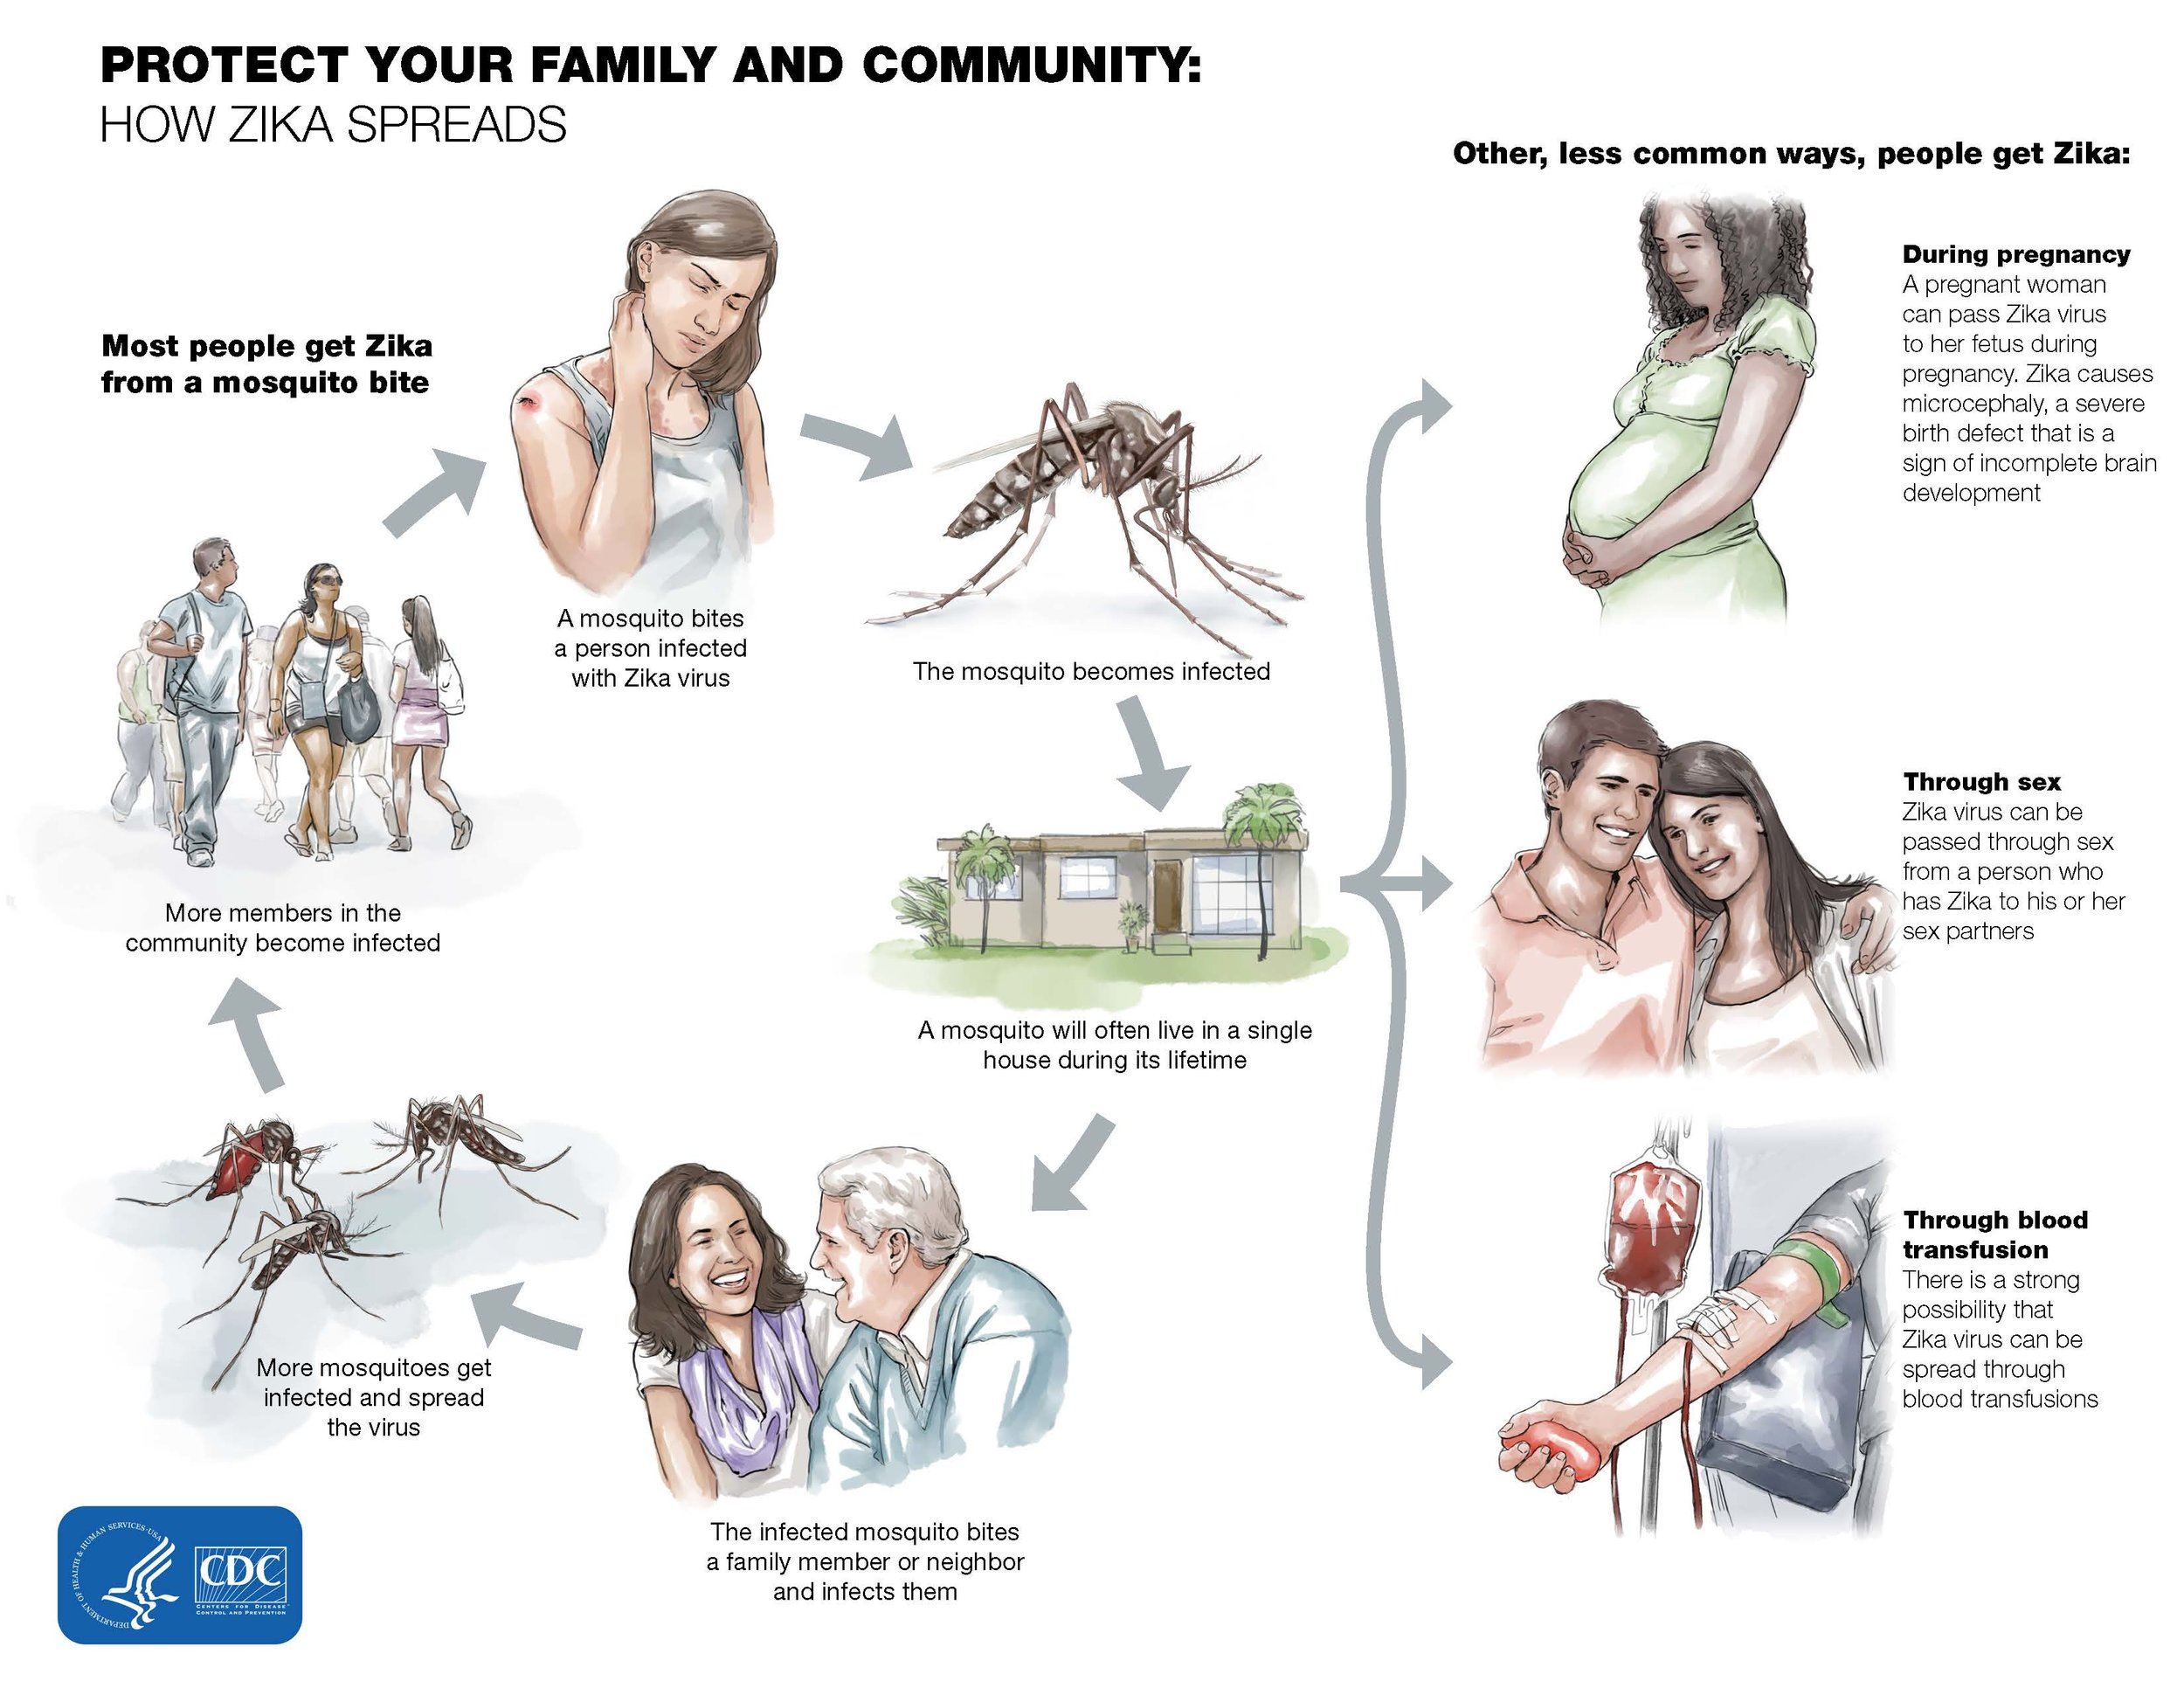 Protect Your Family and Community